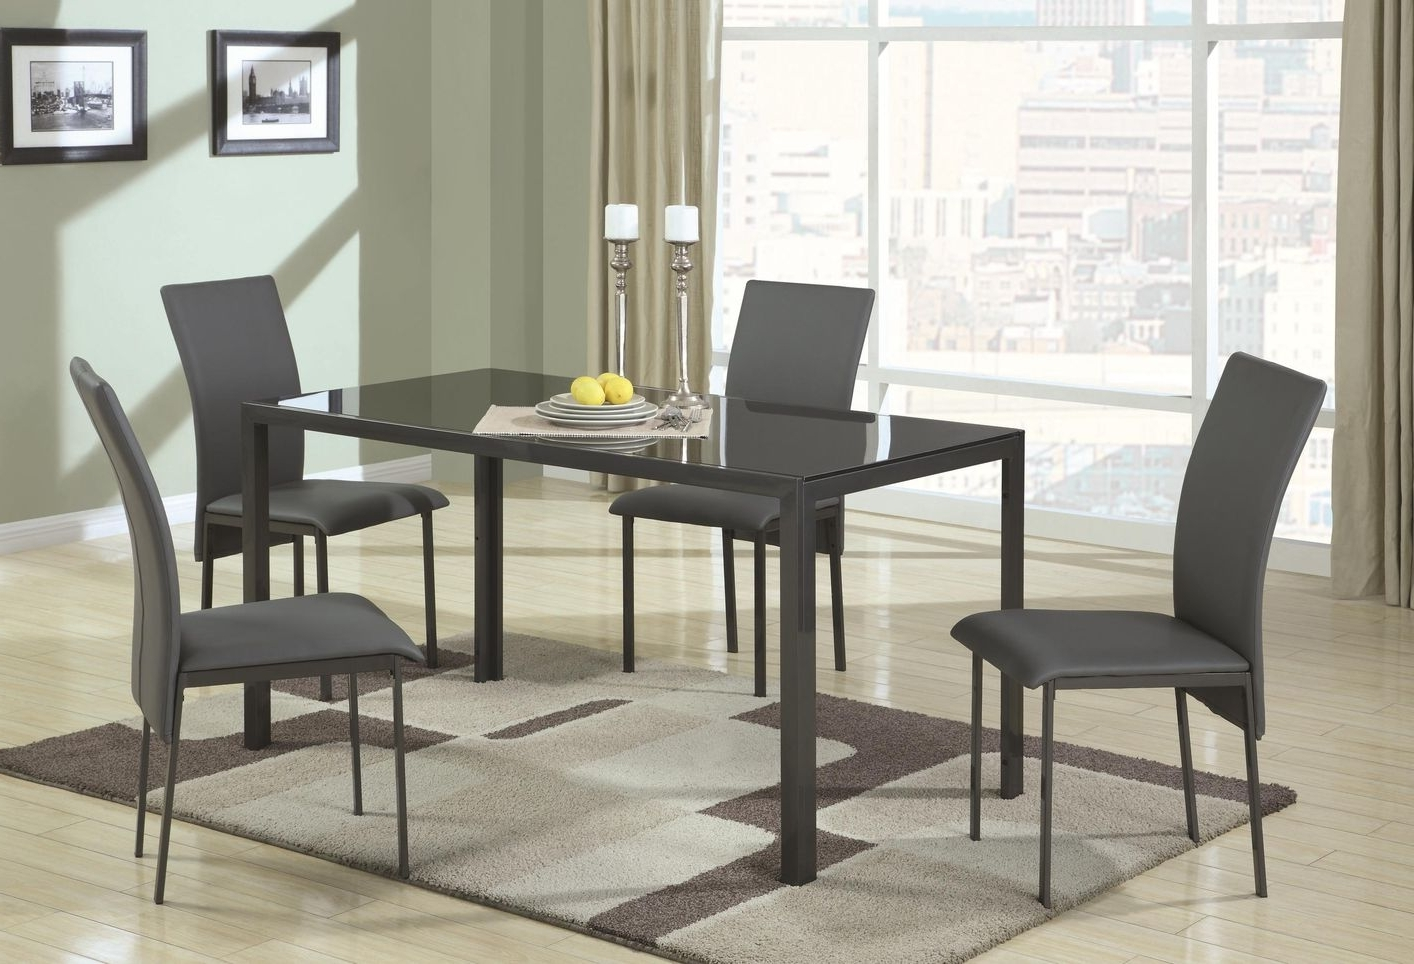 Square Black Glass Dining Tables Within Famous Shelby Black Metal And Glass Dining Table Set – Steal A Sofa (View 19 of 25)